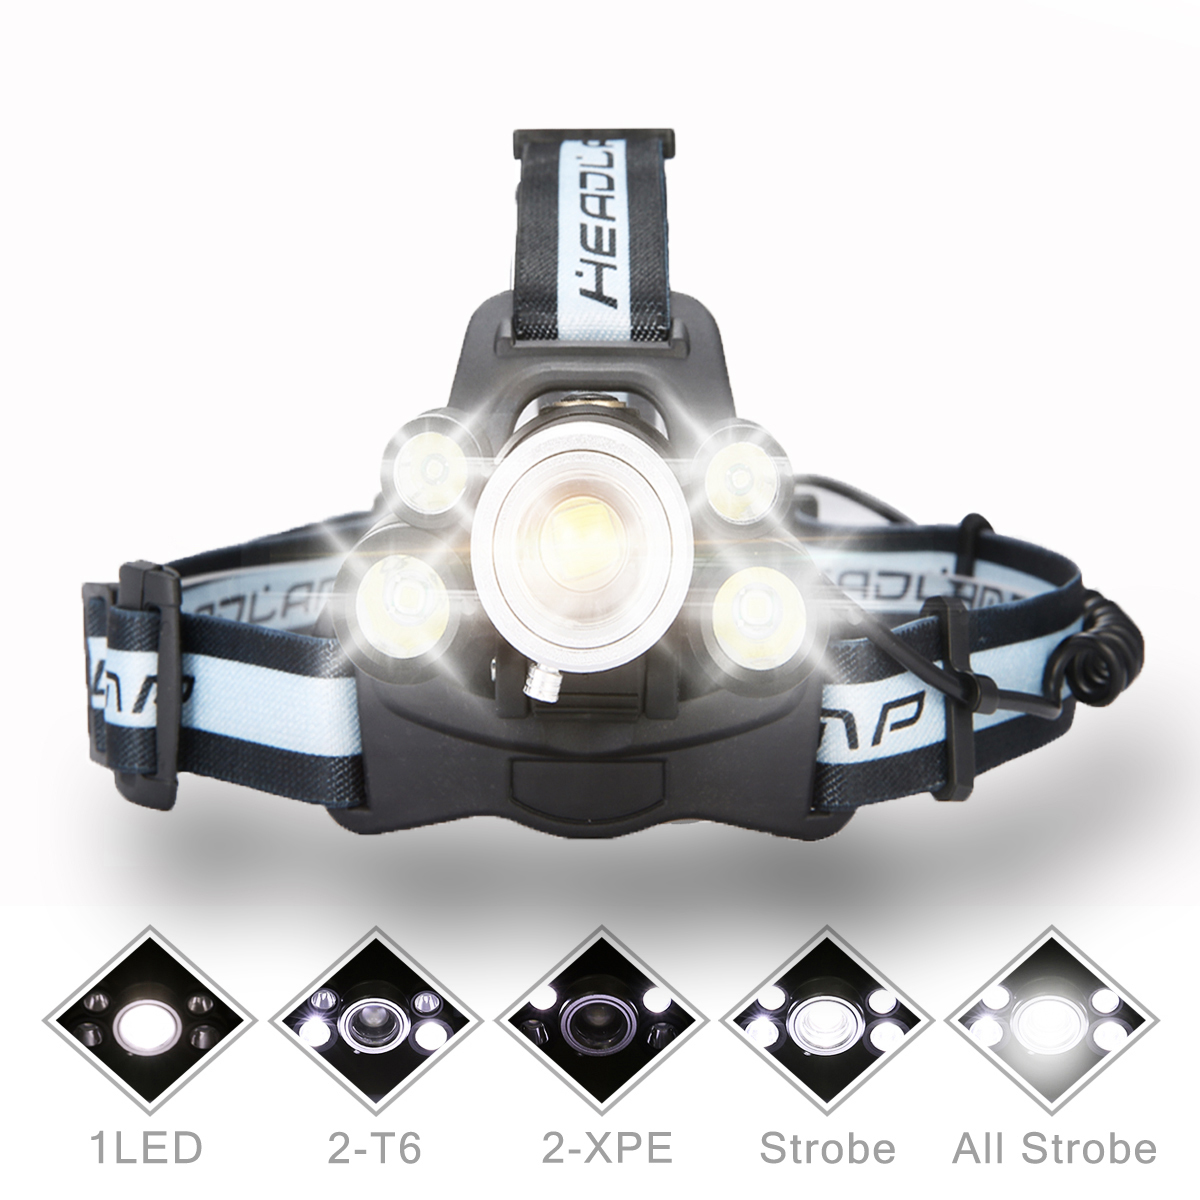 8000 Lumens 3x T5 LED Rechargeable Headlamp Headlight Flashlight Torch Lantern Waterproof 4 Modes or Outdoor Hiking Camping Home